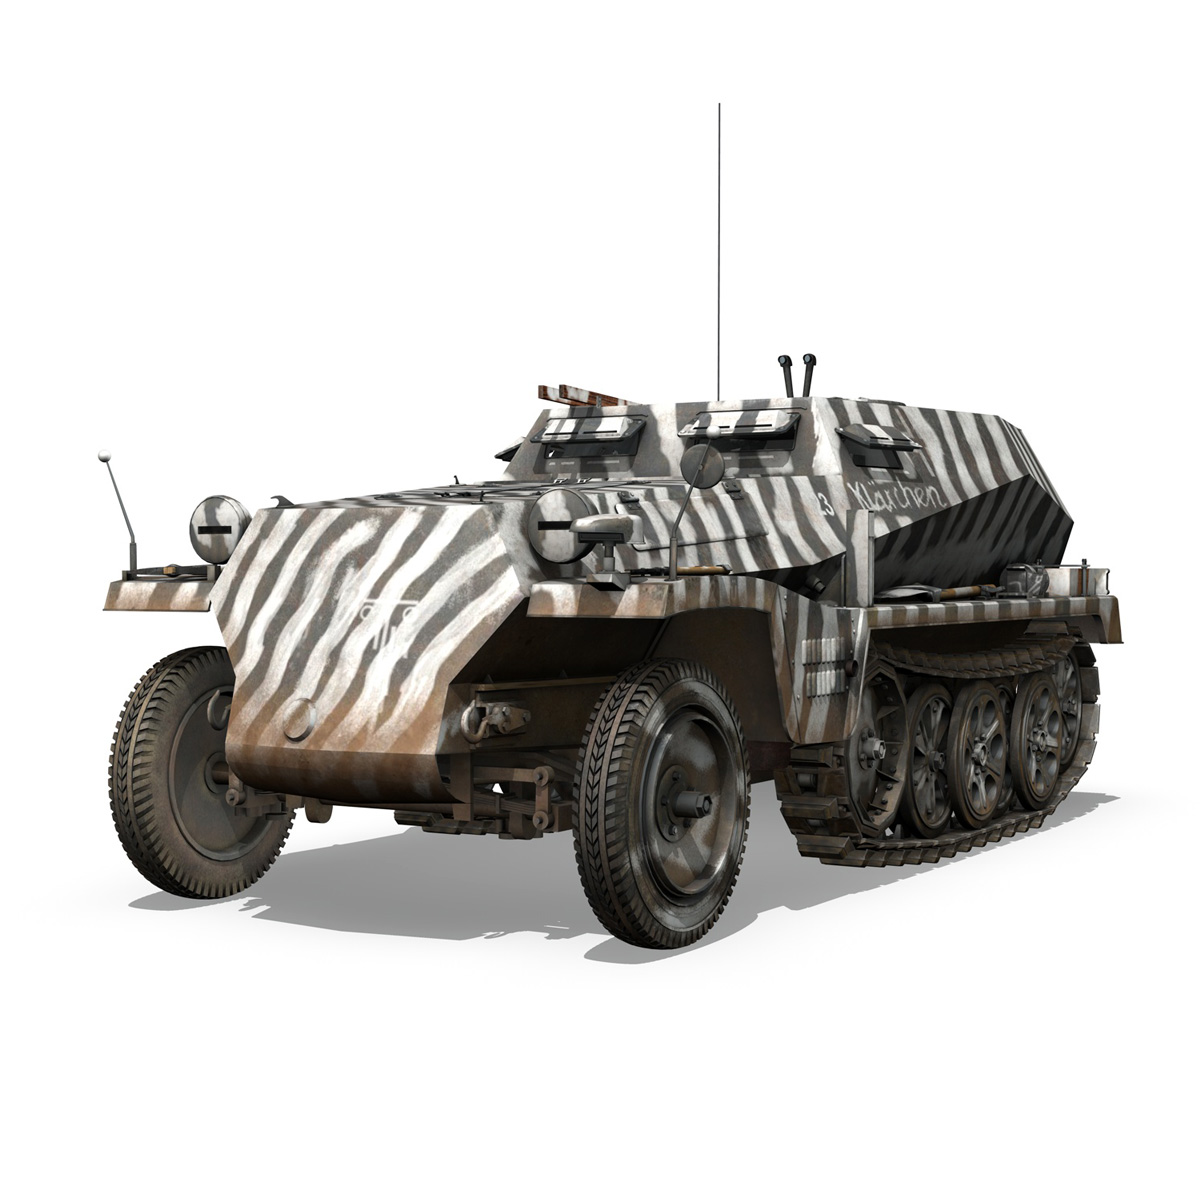 sdkfz.253 – beob.pz.wg. – observation vehicle 3d model 3ds fbx c4d lwo obj 269027